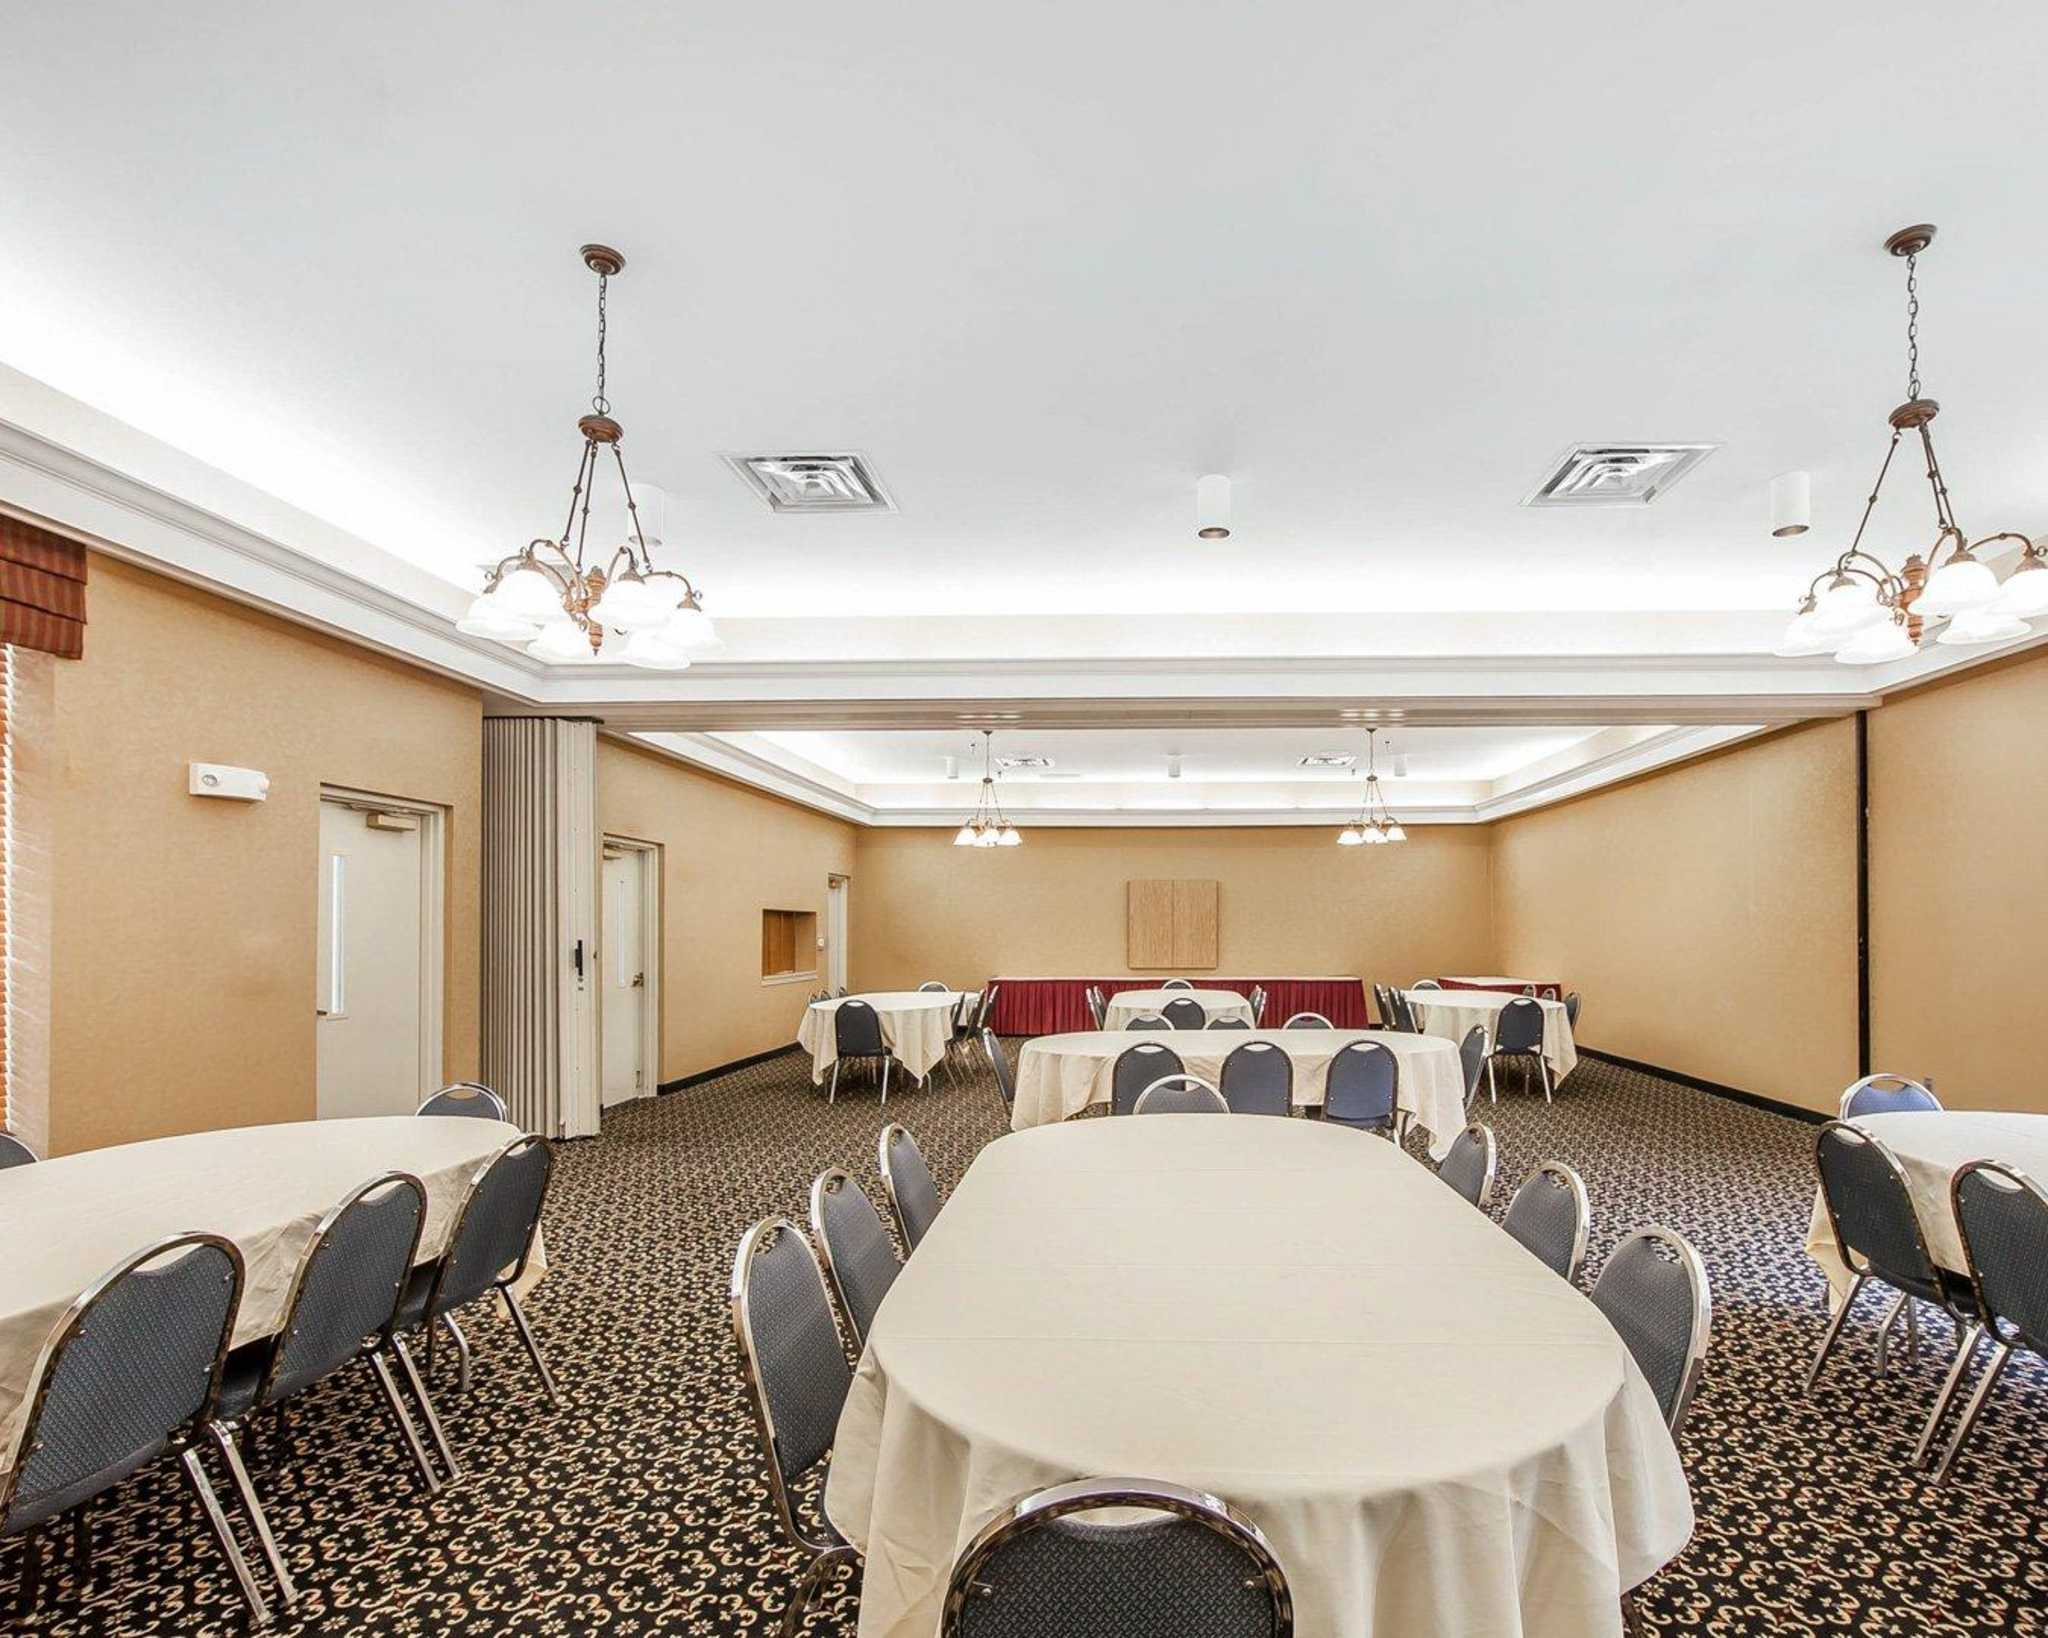 MainStay Suites Conference Center image 14